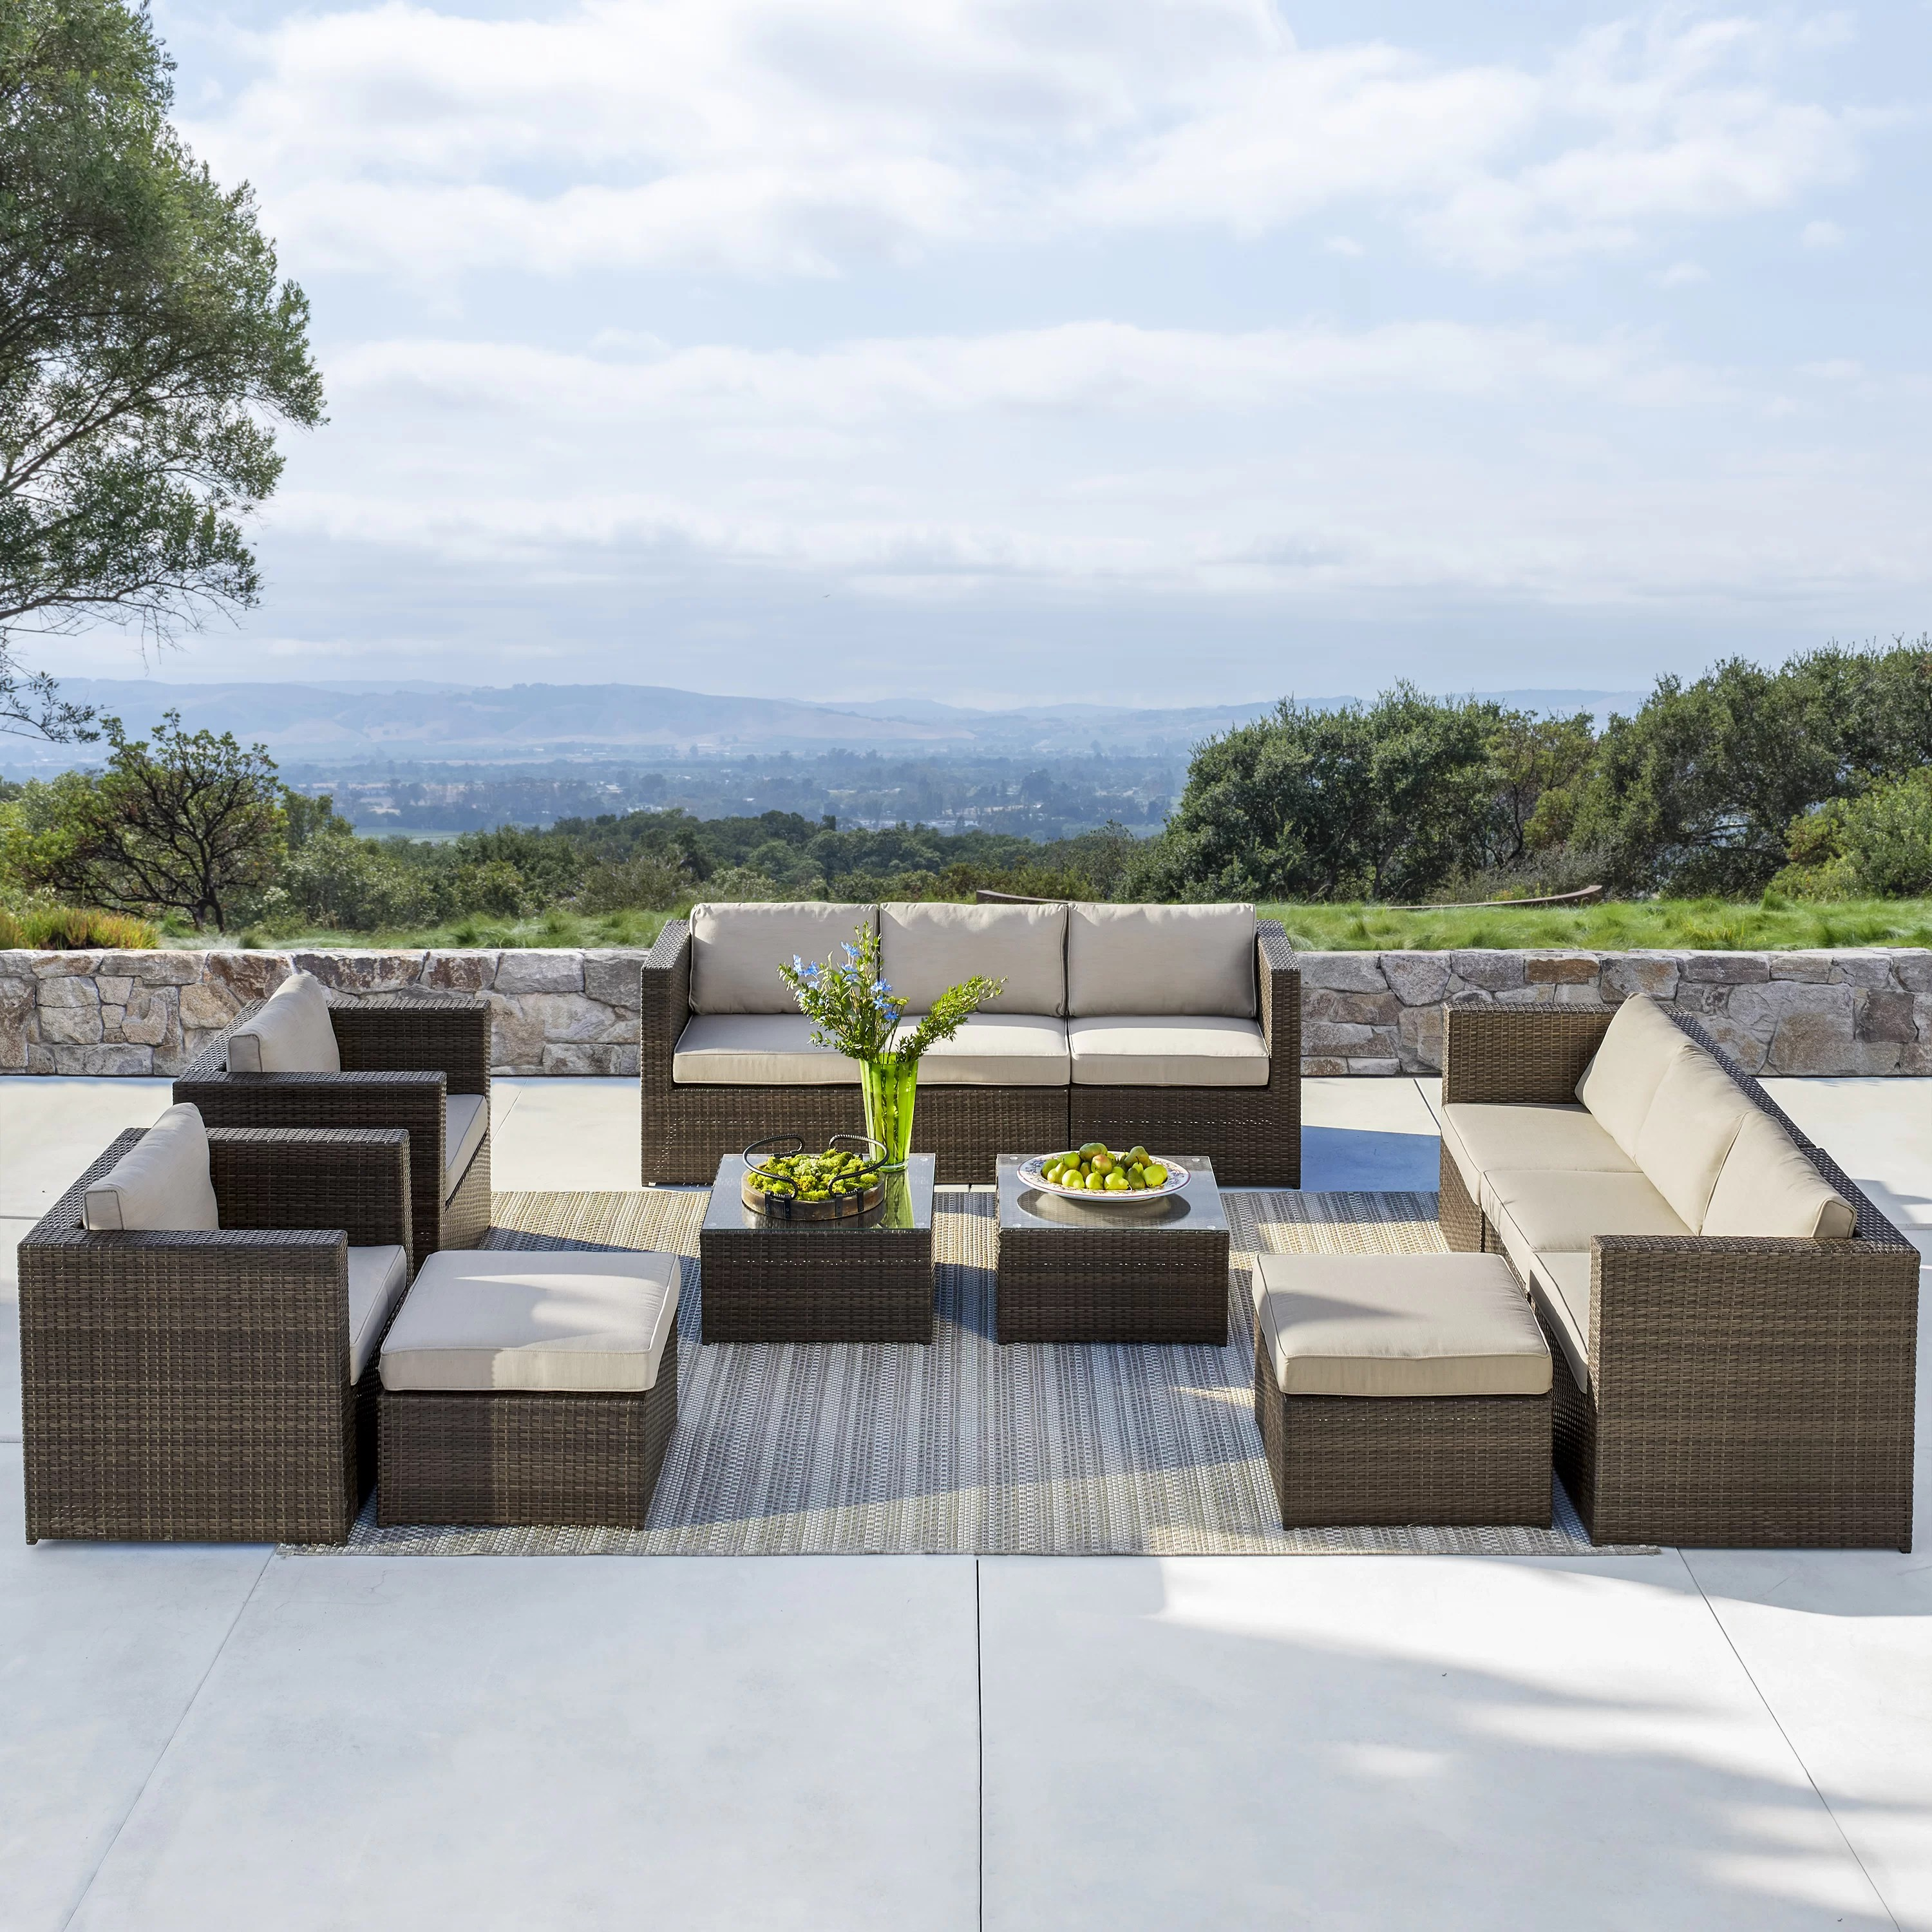 Baptist 6 Piece Rattan Sofa Set With Cushions Eastbrook 12 Piece Rattan Sectional Seating Group With Cushions